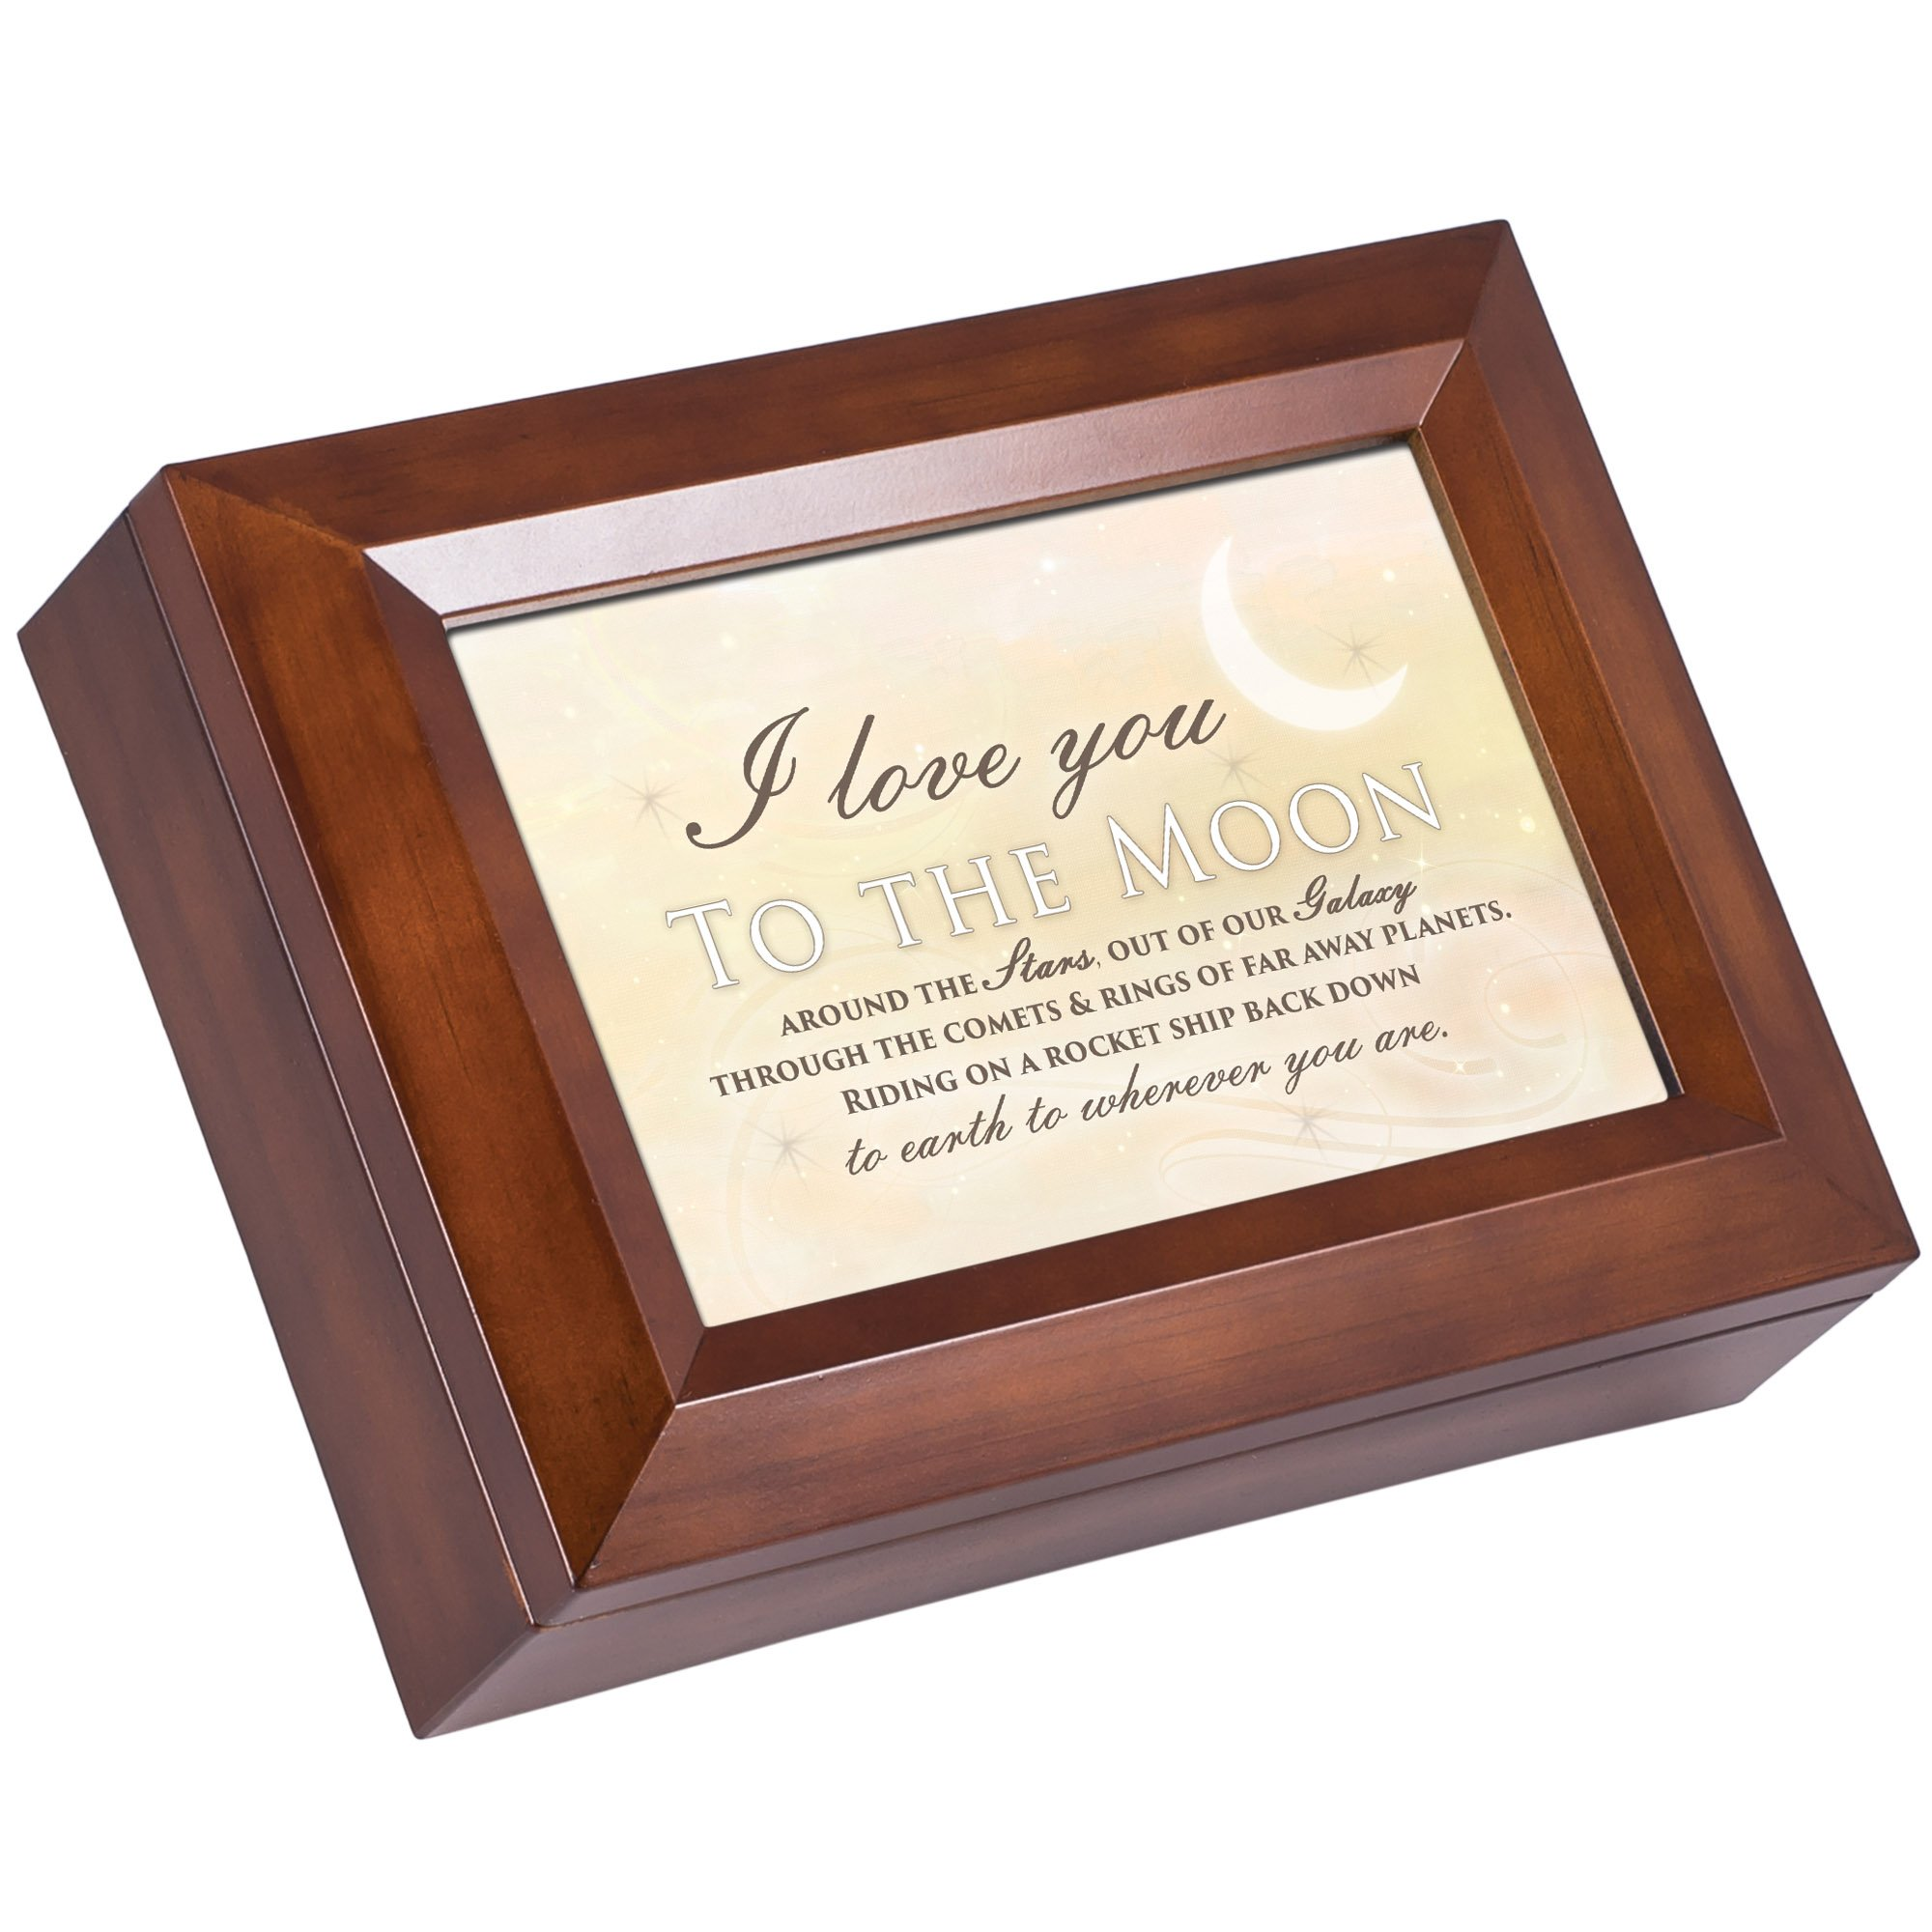 Cottage Garden Love You to the Moon Wood Finish Jewelry Music Box Plays All You Need is Love by Cottage Garden (Image #1)